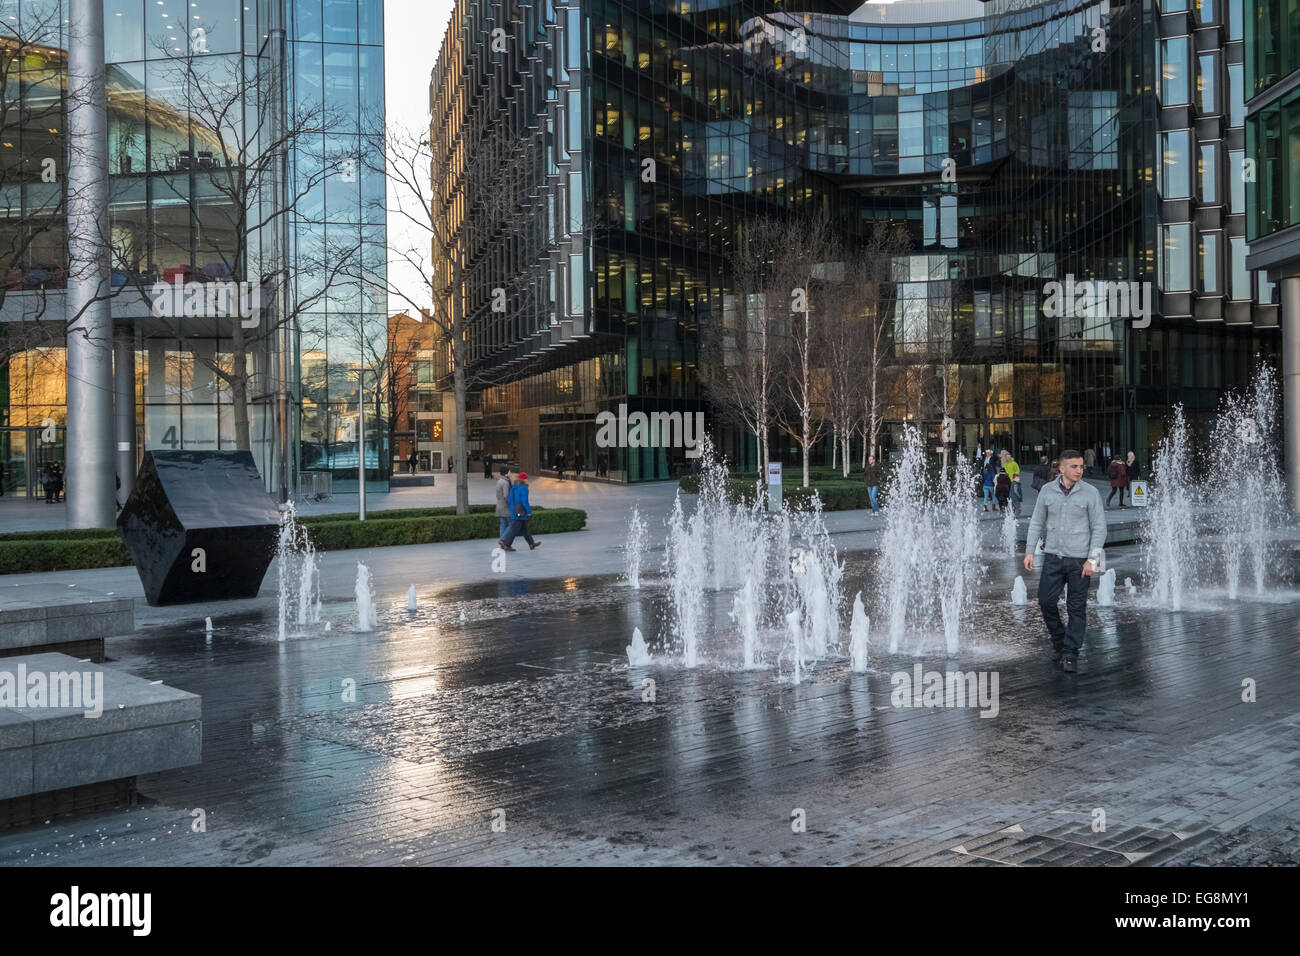 More London Riverside area, with PWC offices in the background. - Stock Image